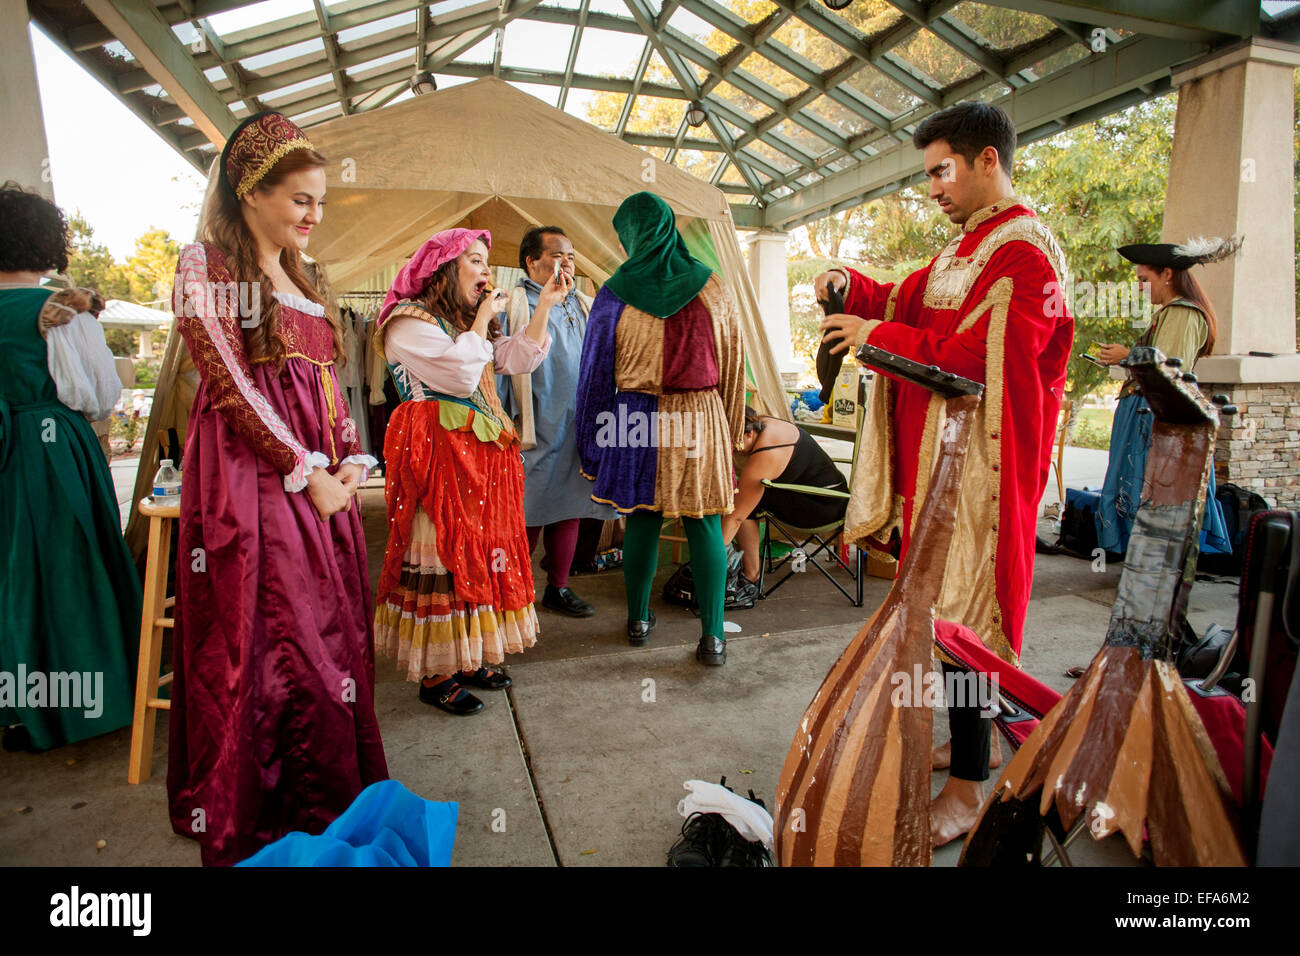 Amateur Shakespearean actors don their costumes for an outdoor performance in Laguna Hills, CA. - Stock Image